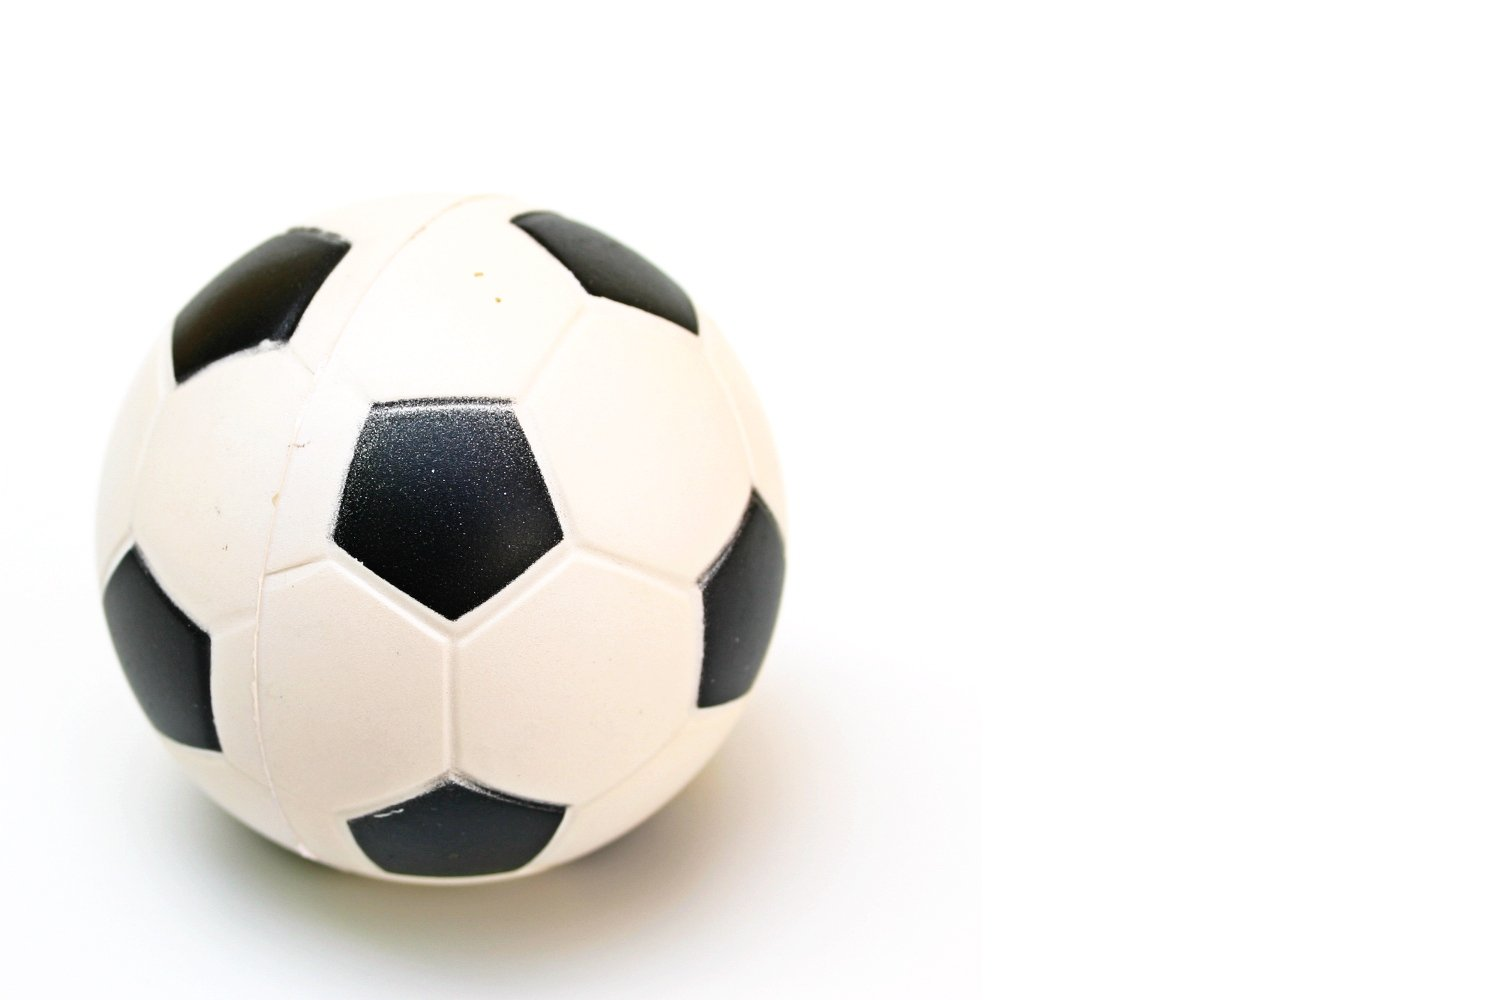 Soccer ball, Recreational, Rest, Round, Shape, HQ Photo